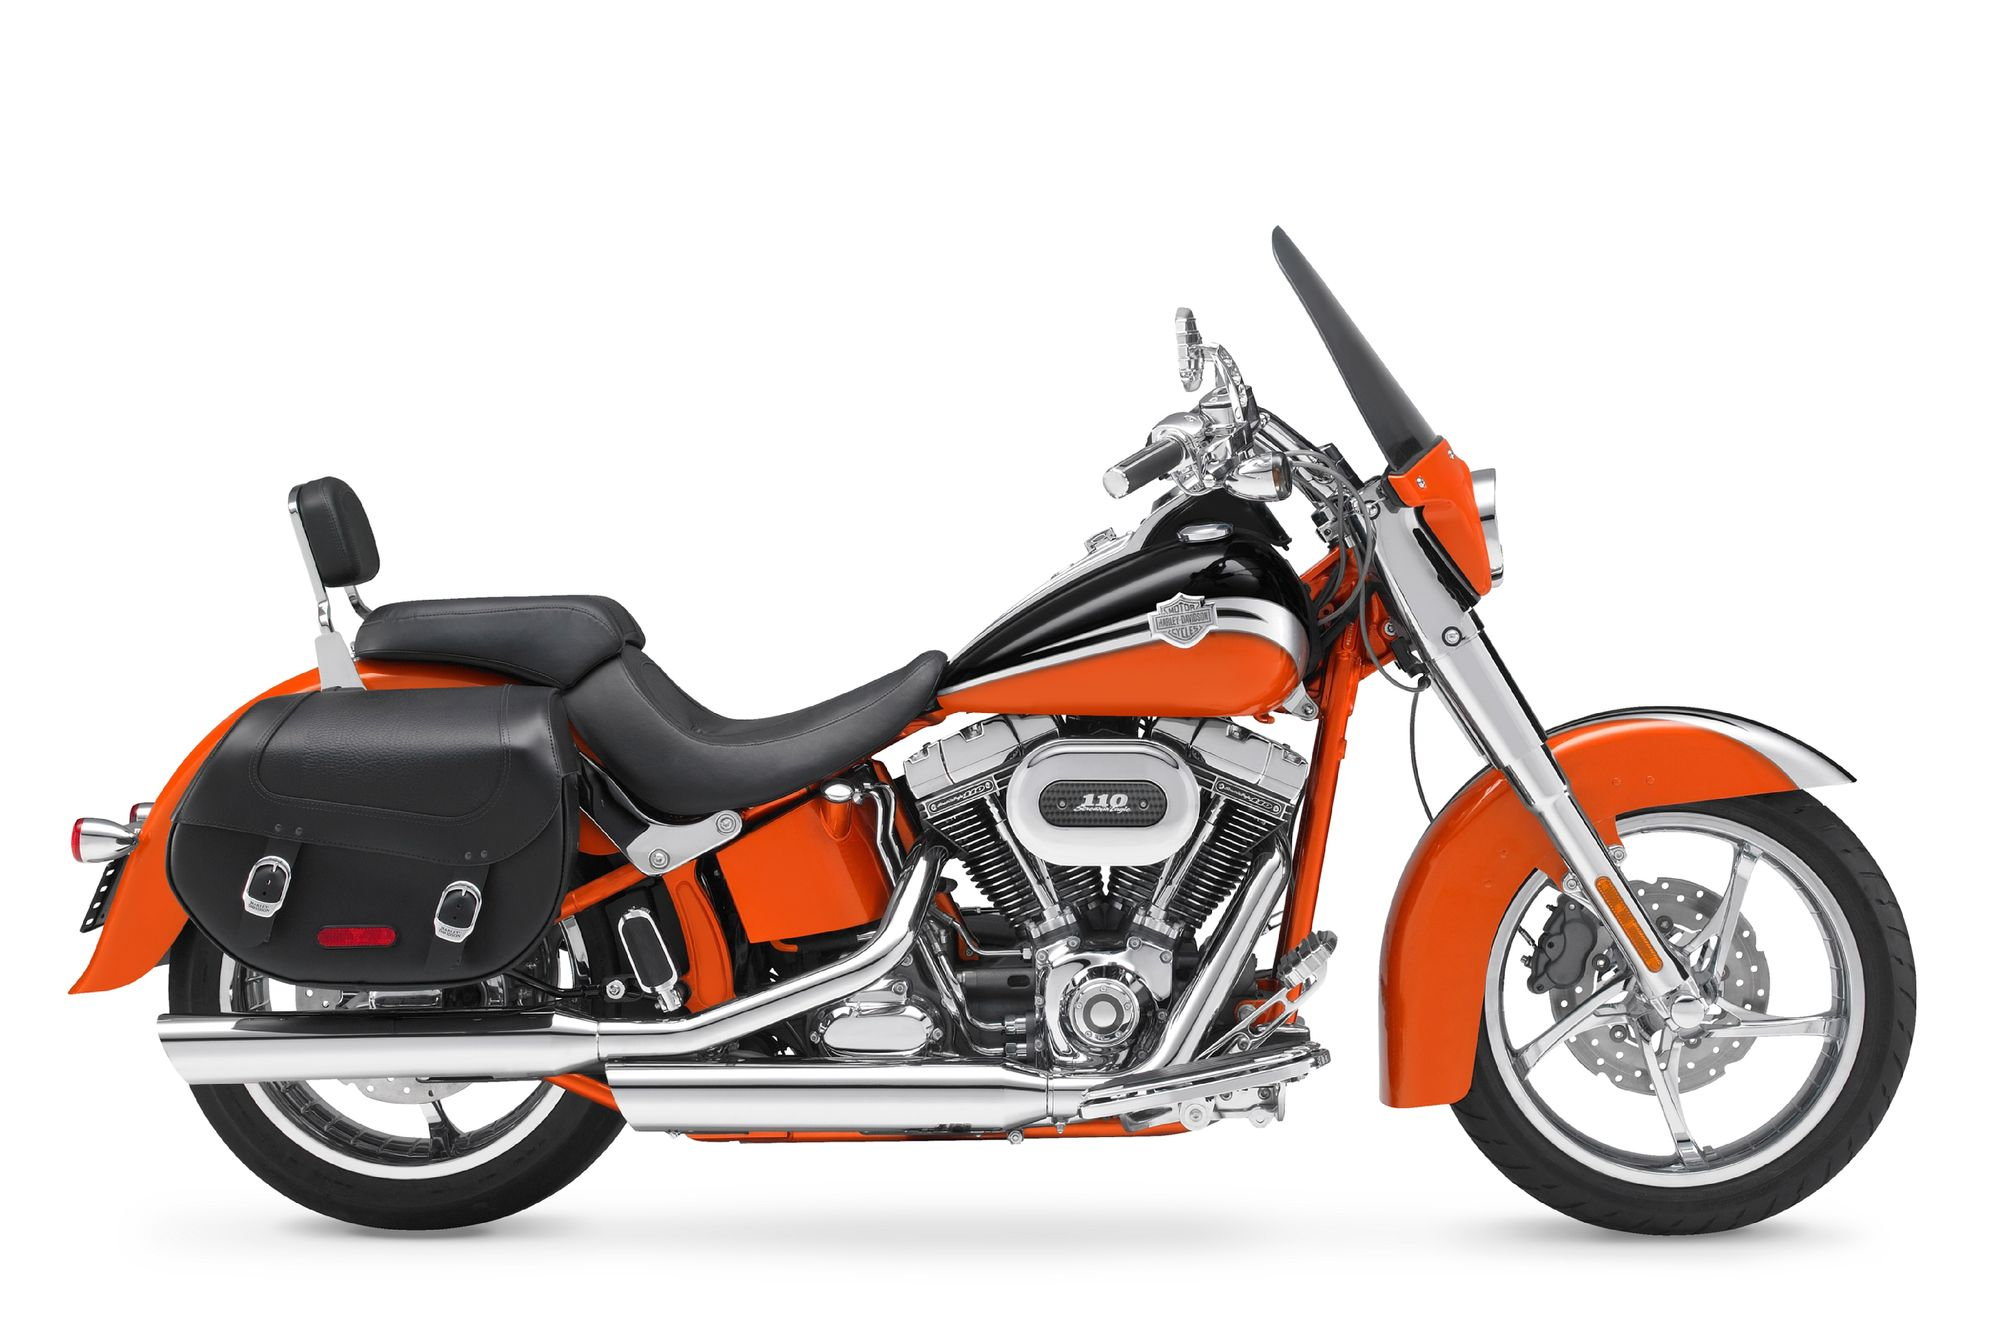 2010 CVO Softail Convertible First Ride